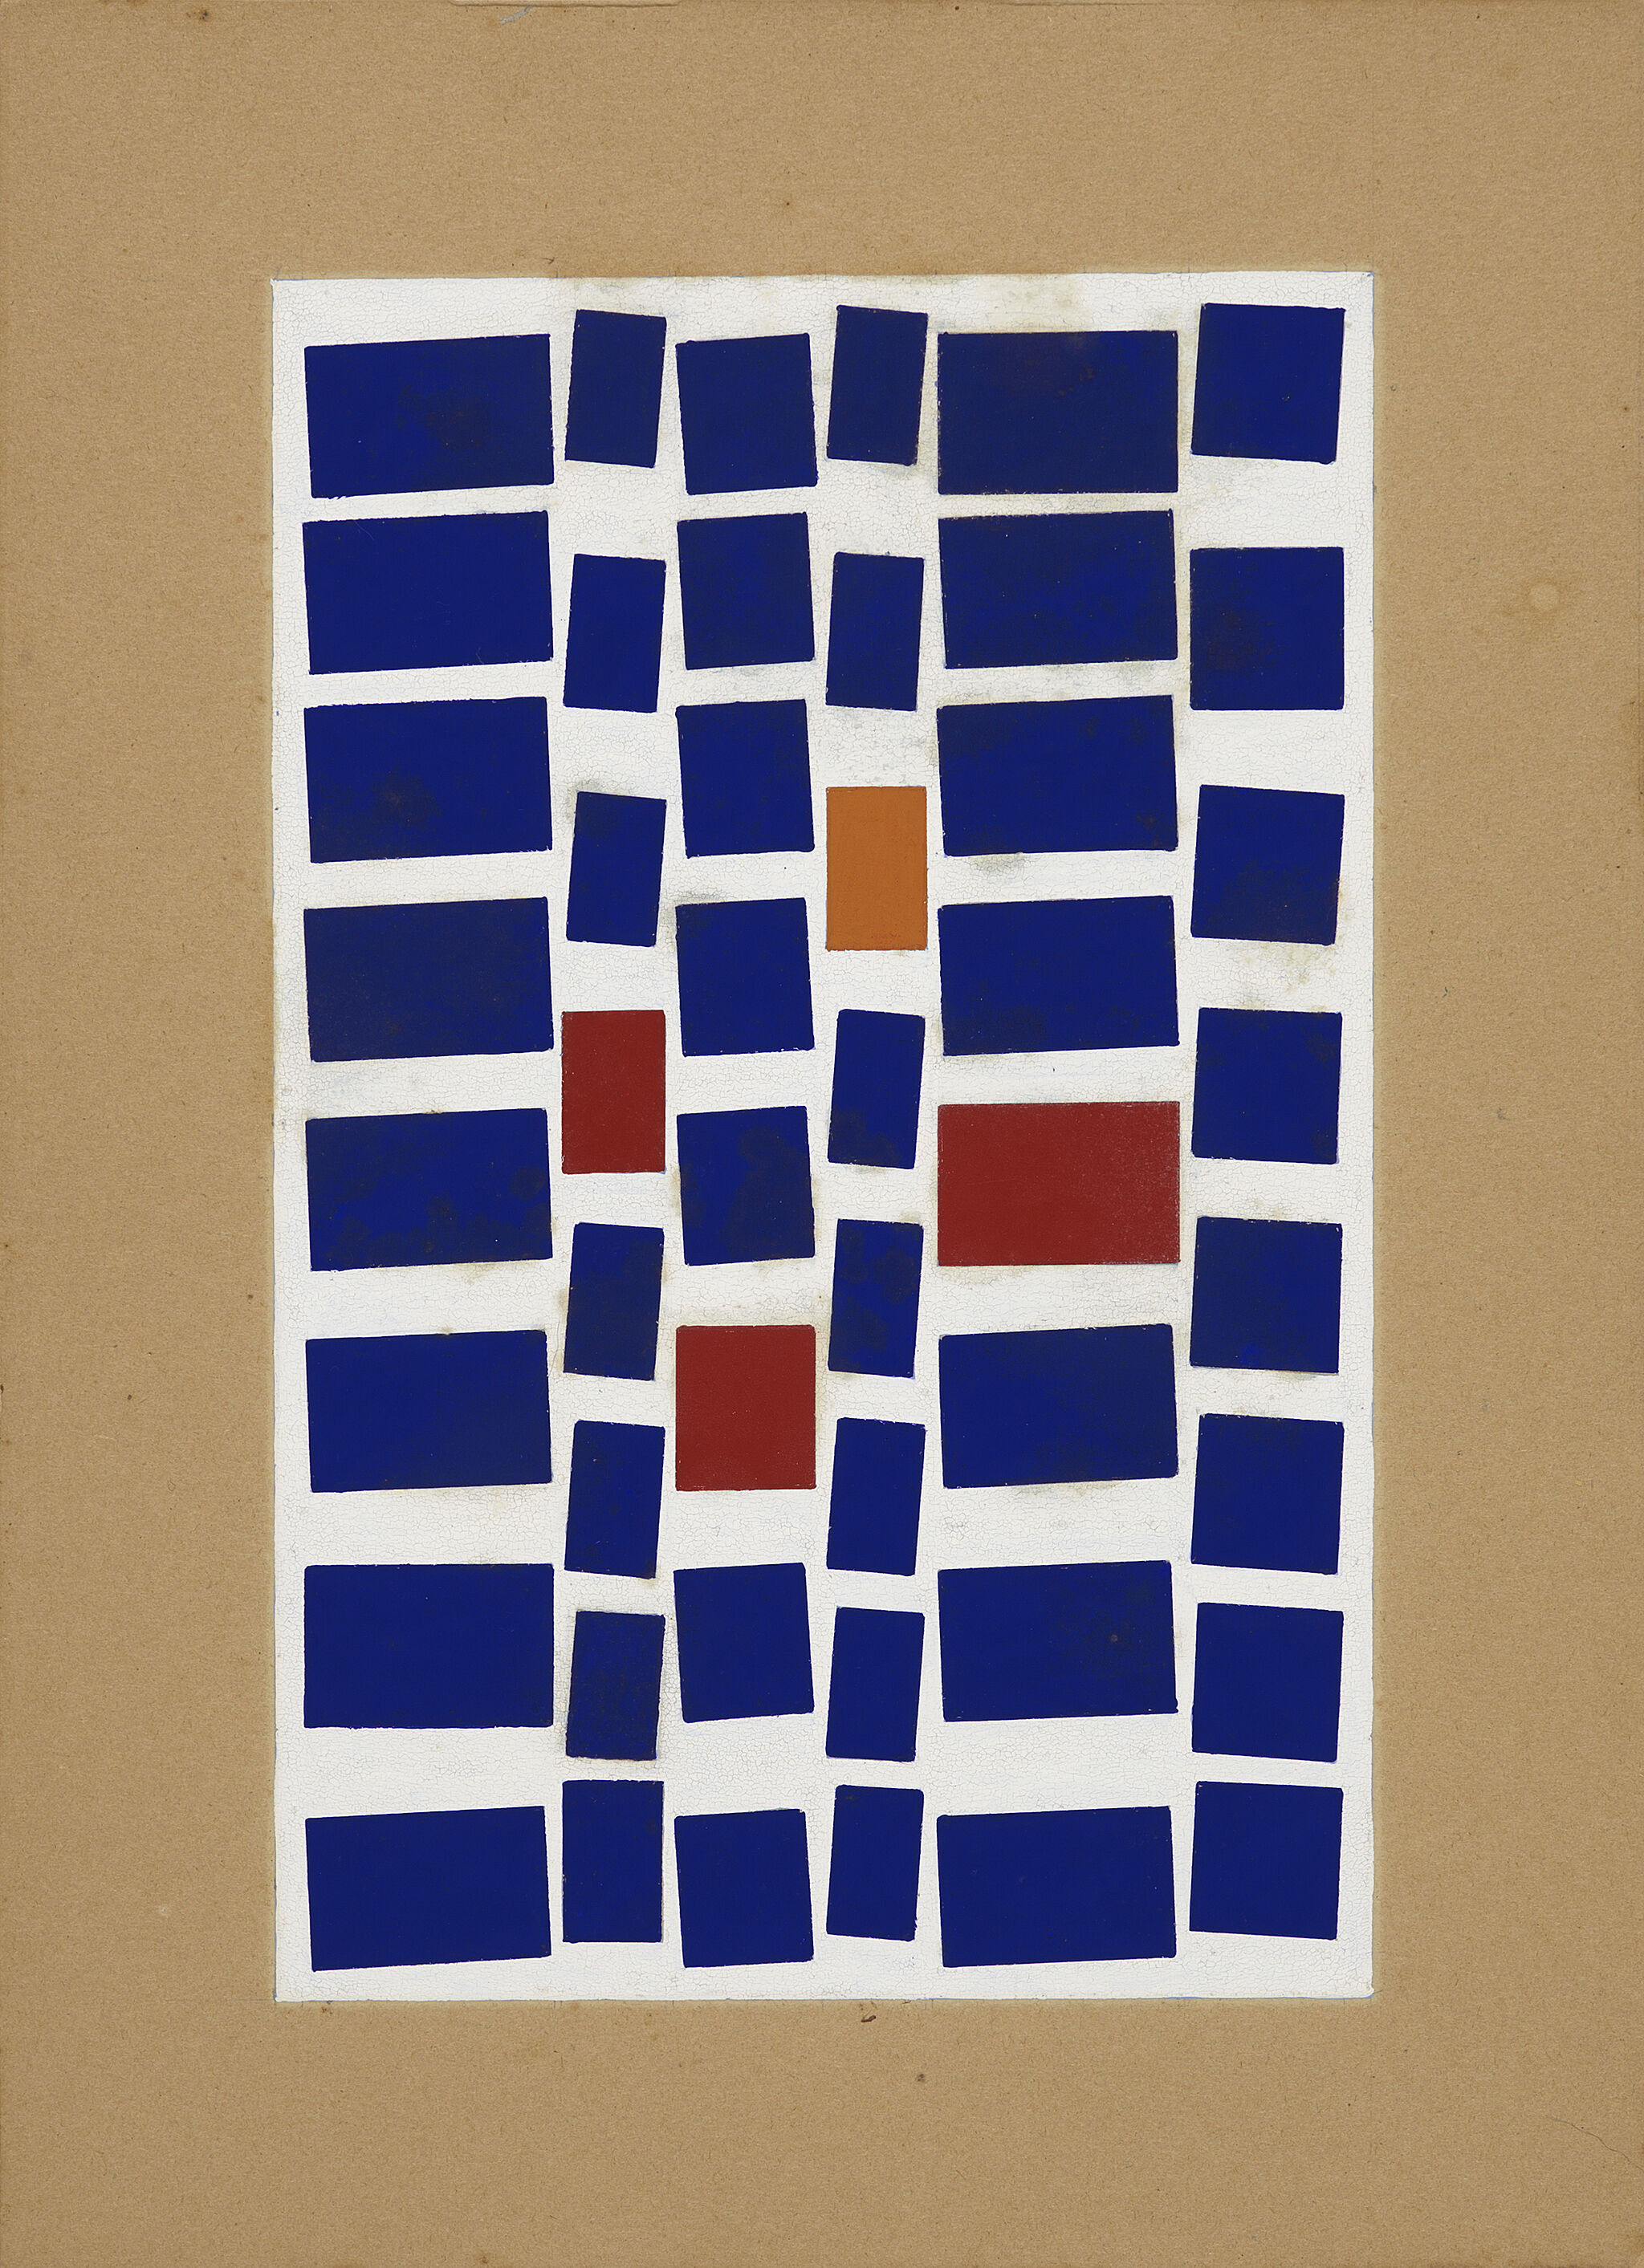 Dark blue, red, and orange squares arranged in a grid on cardboard.